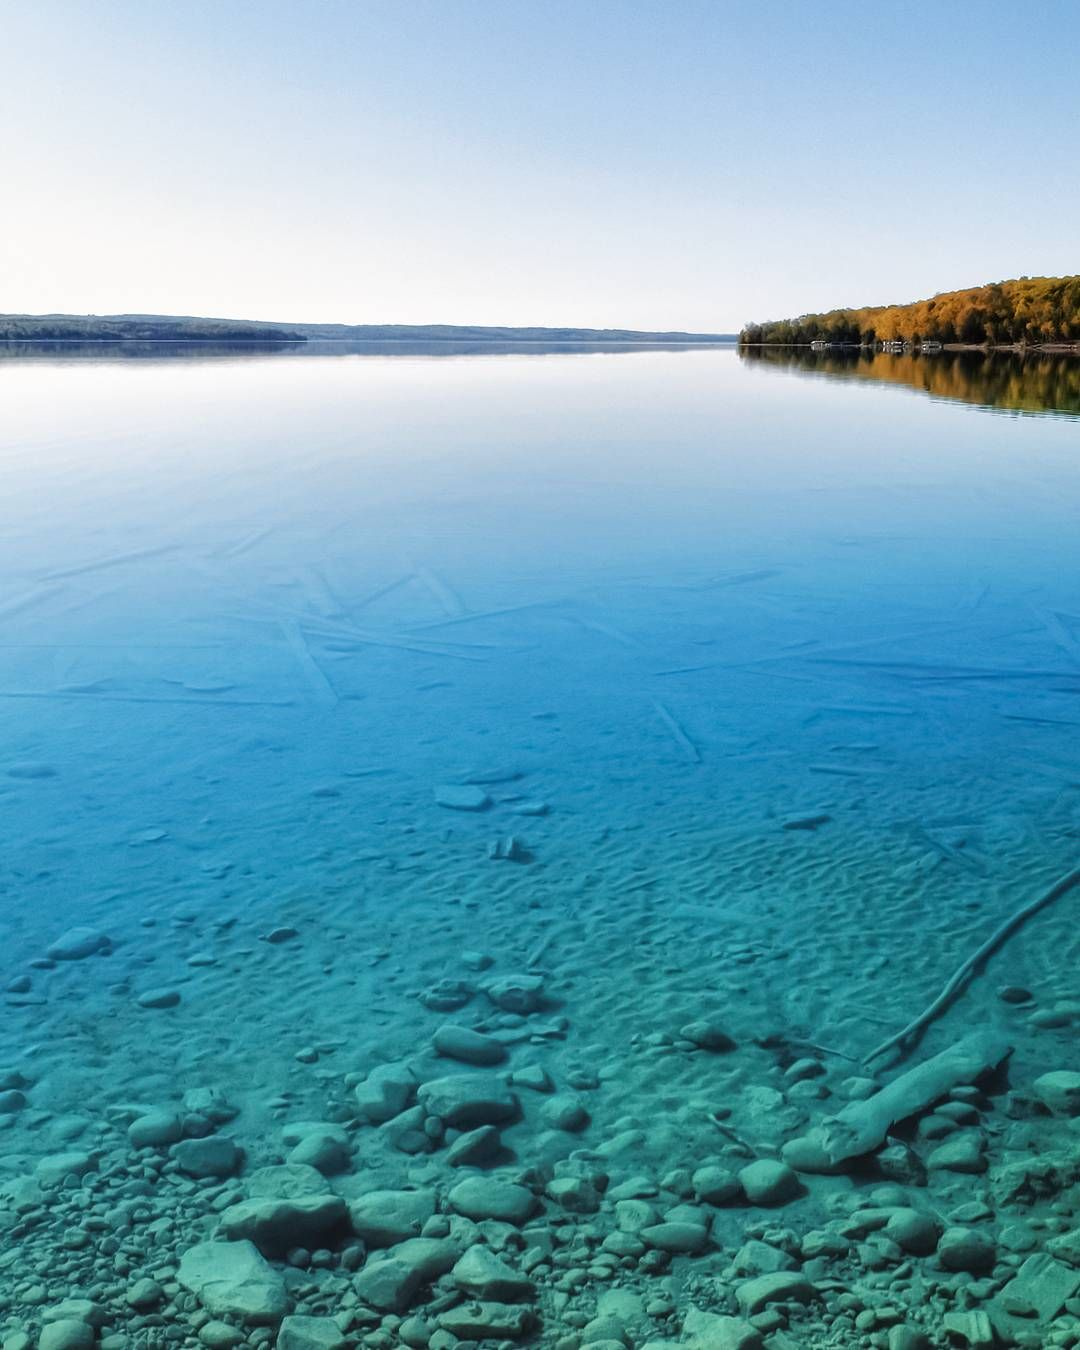 Beautiful Lake House Homes: The Incredibly Beautiful Torch Lake In Michigan's Lower